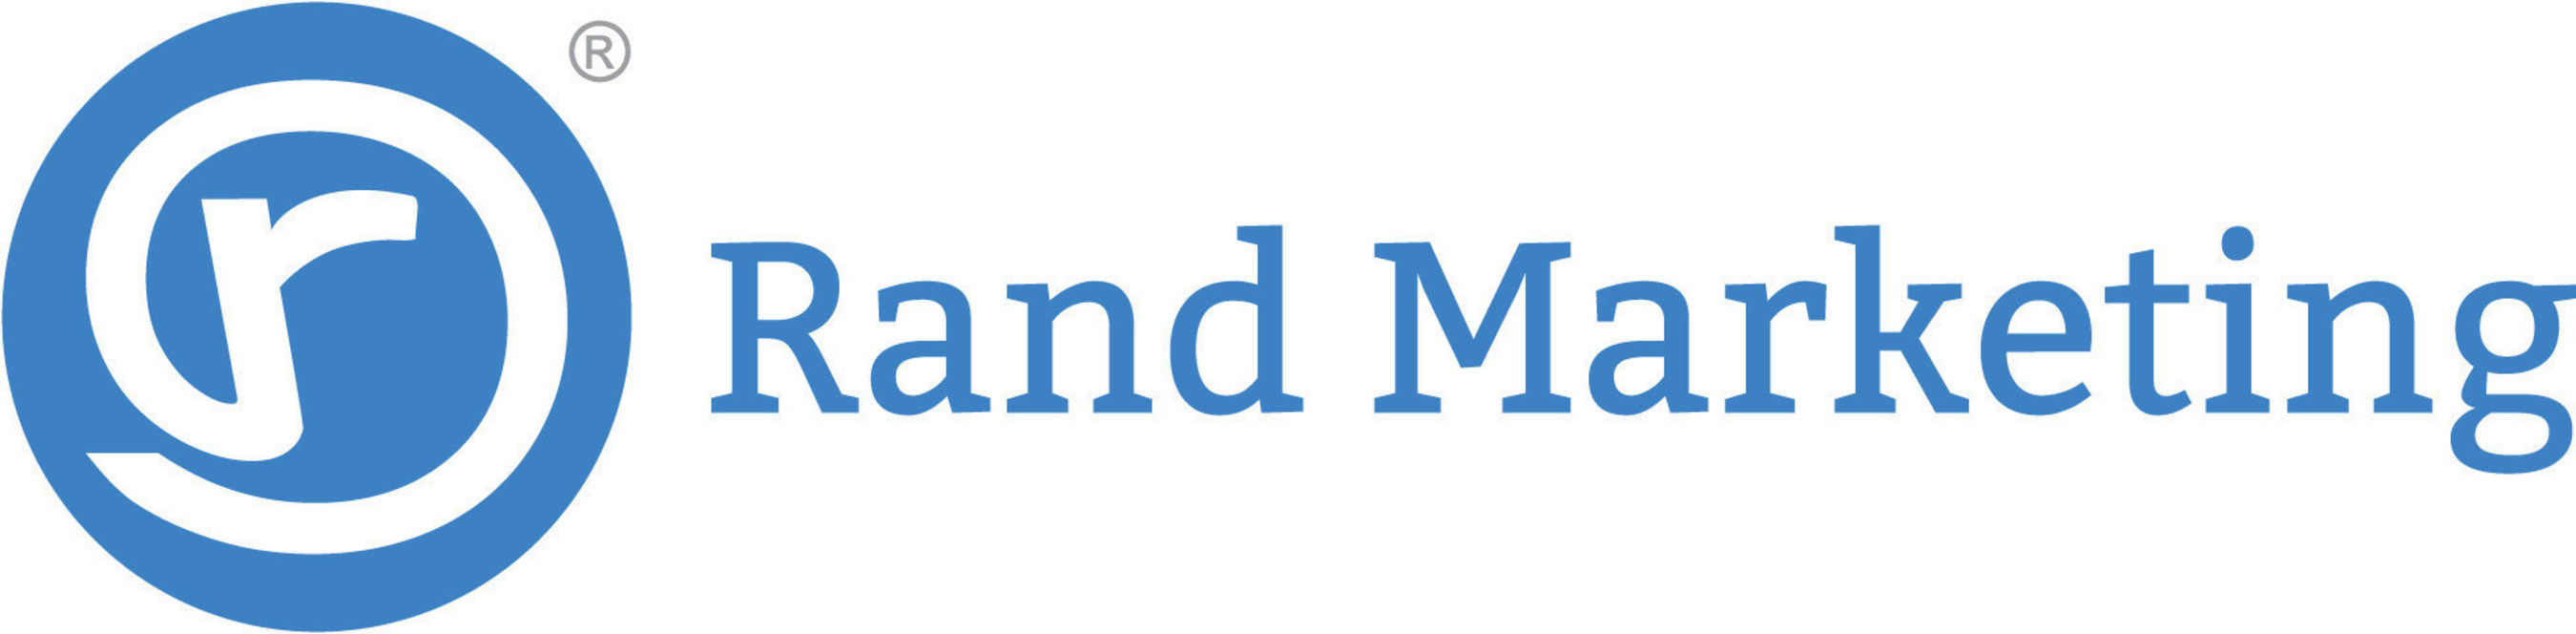 Rand Marketing Invited to 2015 Google Partners All-Star Summit